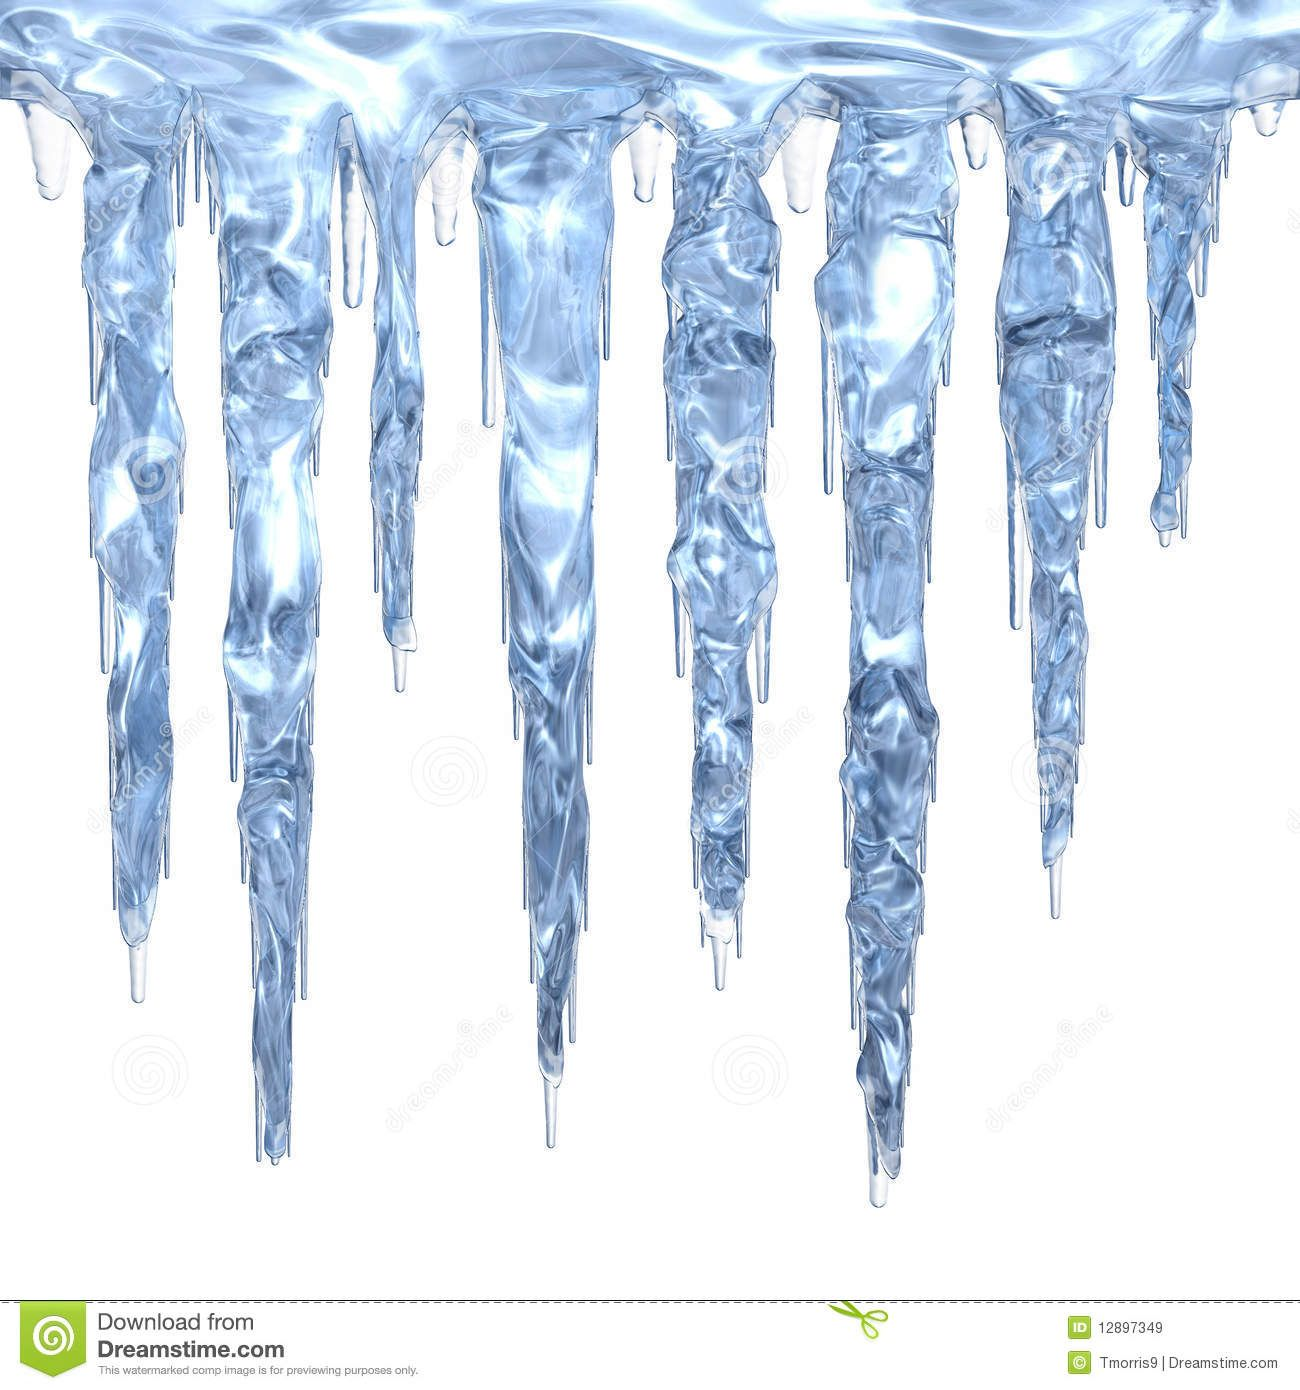 Free icicle clipart jpg royalty free download Free download Icicle Clipart for your creation. | Random | Clip art ... jpg royalty free download